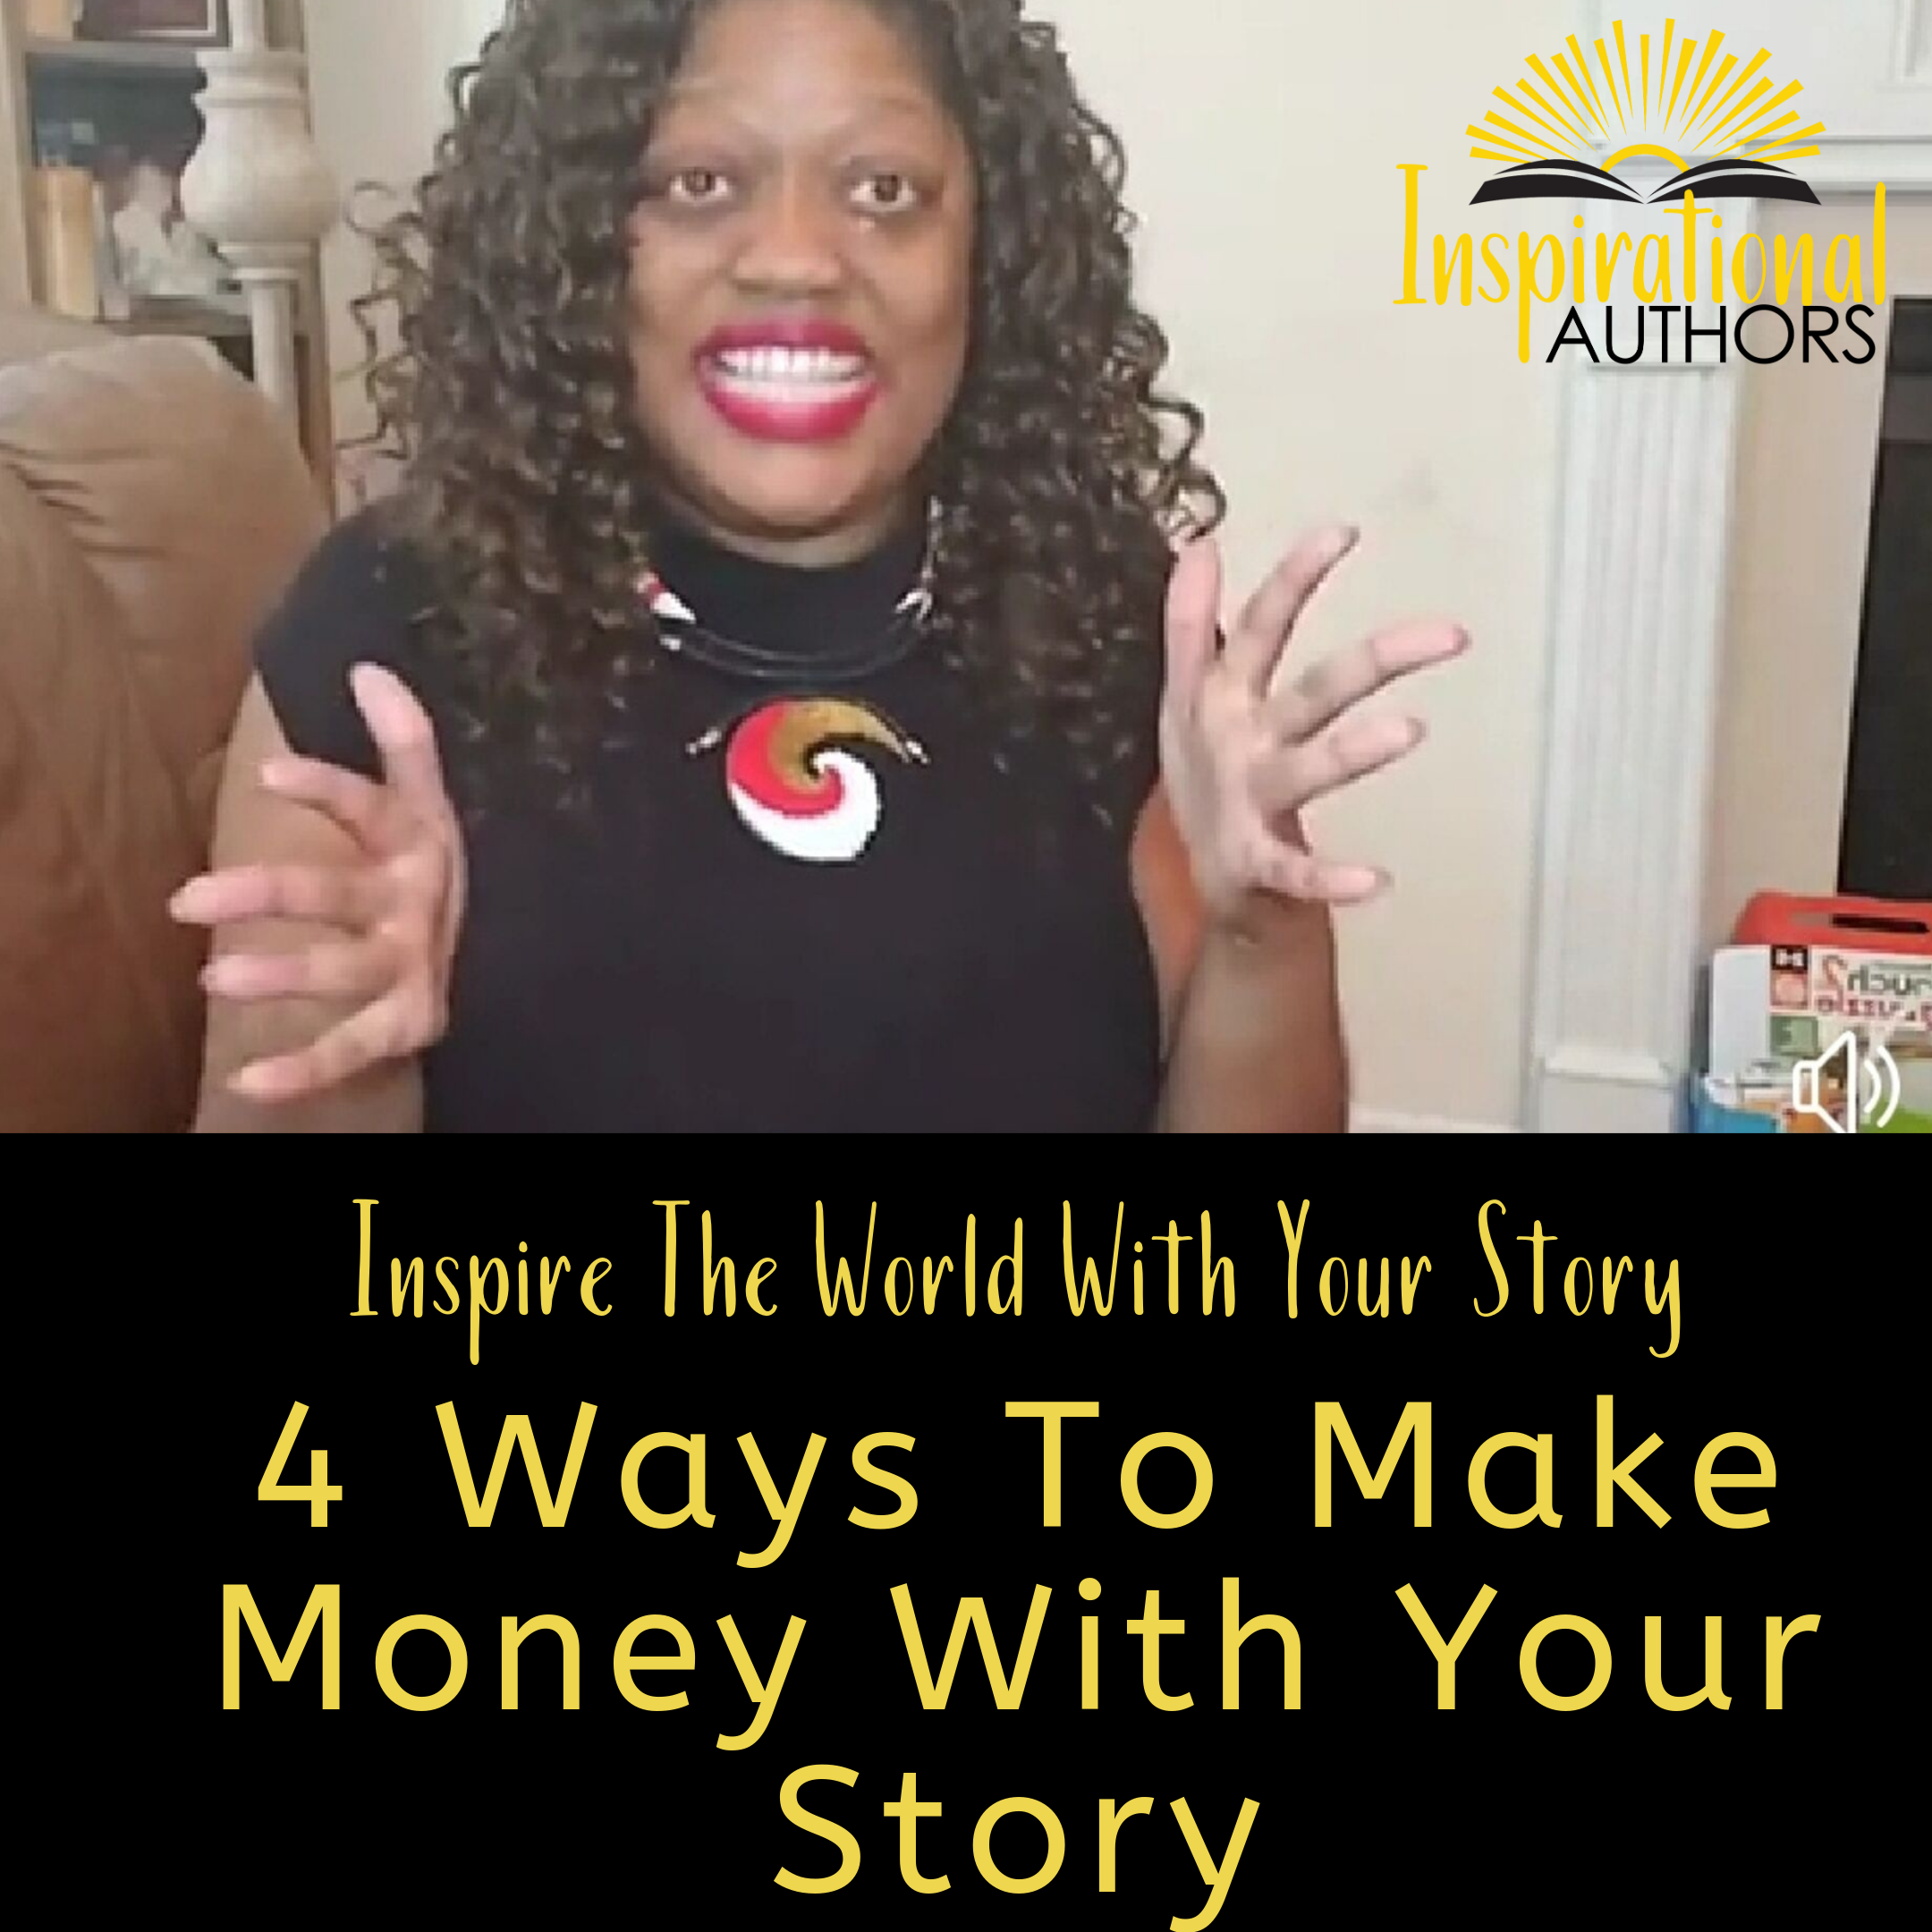 Inspire The World With Your Story (part 4):  4 Ways to Make Money With Your Story